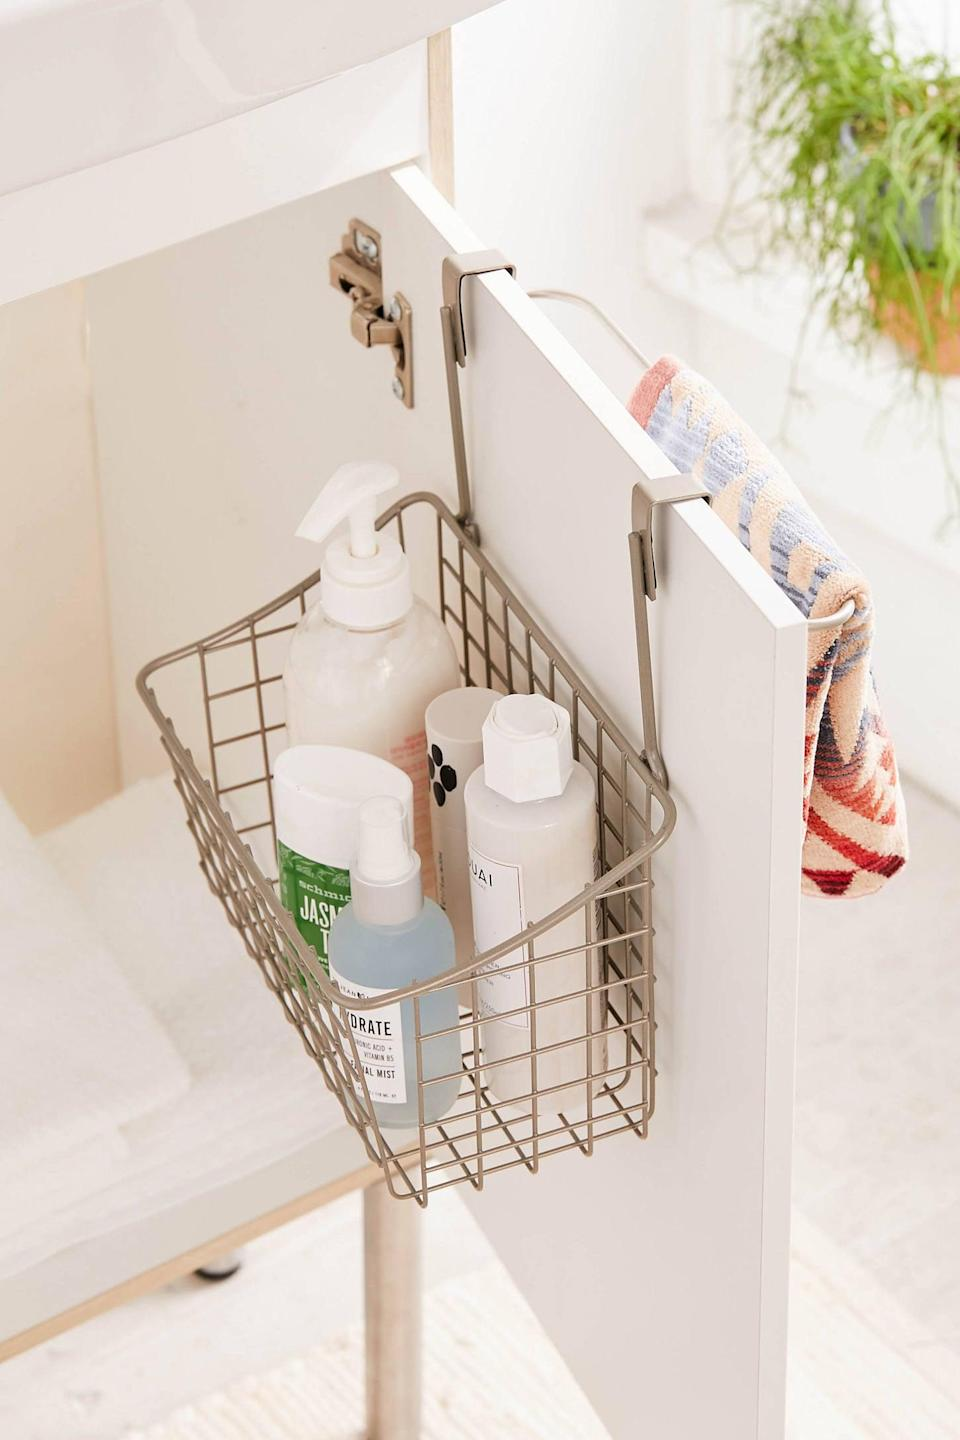 "<p>Your cabinets will feel so organized with this <a href=""https://www.popsugar.com/buy/Grid-Over--Cabinet-Basket-432638?p_name=Grid%20Over-the-Cabinet%20Basket&retailer=urbanoutfitters.com&pid=432638&price=18&evar1=moms%3Aus&evar9=46083939&evar98=https%3A%2F%2Fwww.popsugar.com%2Ffamily%2Fphoto-gallery%2F46083939%2Fimage%2F46083958%2FGrid-Over--Cabinet-Basket&list1=shopping%2Corganization%2Cbathrooms%2Chome%20organization&prop13=mobile&pdata=1"" class=""link rapid-noclick-resp"" rel=""nofollow noopener"" target=""_blank"" data-ylk=""slk:Grid Over-the-Cabinet Basket"">Grid Over-the-Cabinet Basket</a> ($18).</p>"